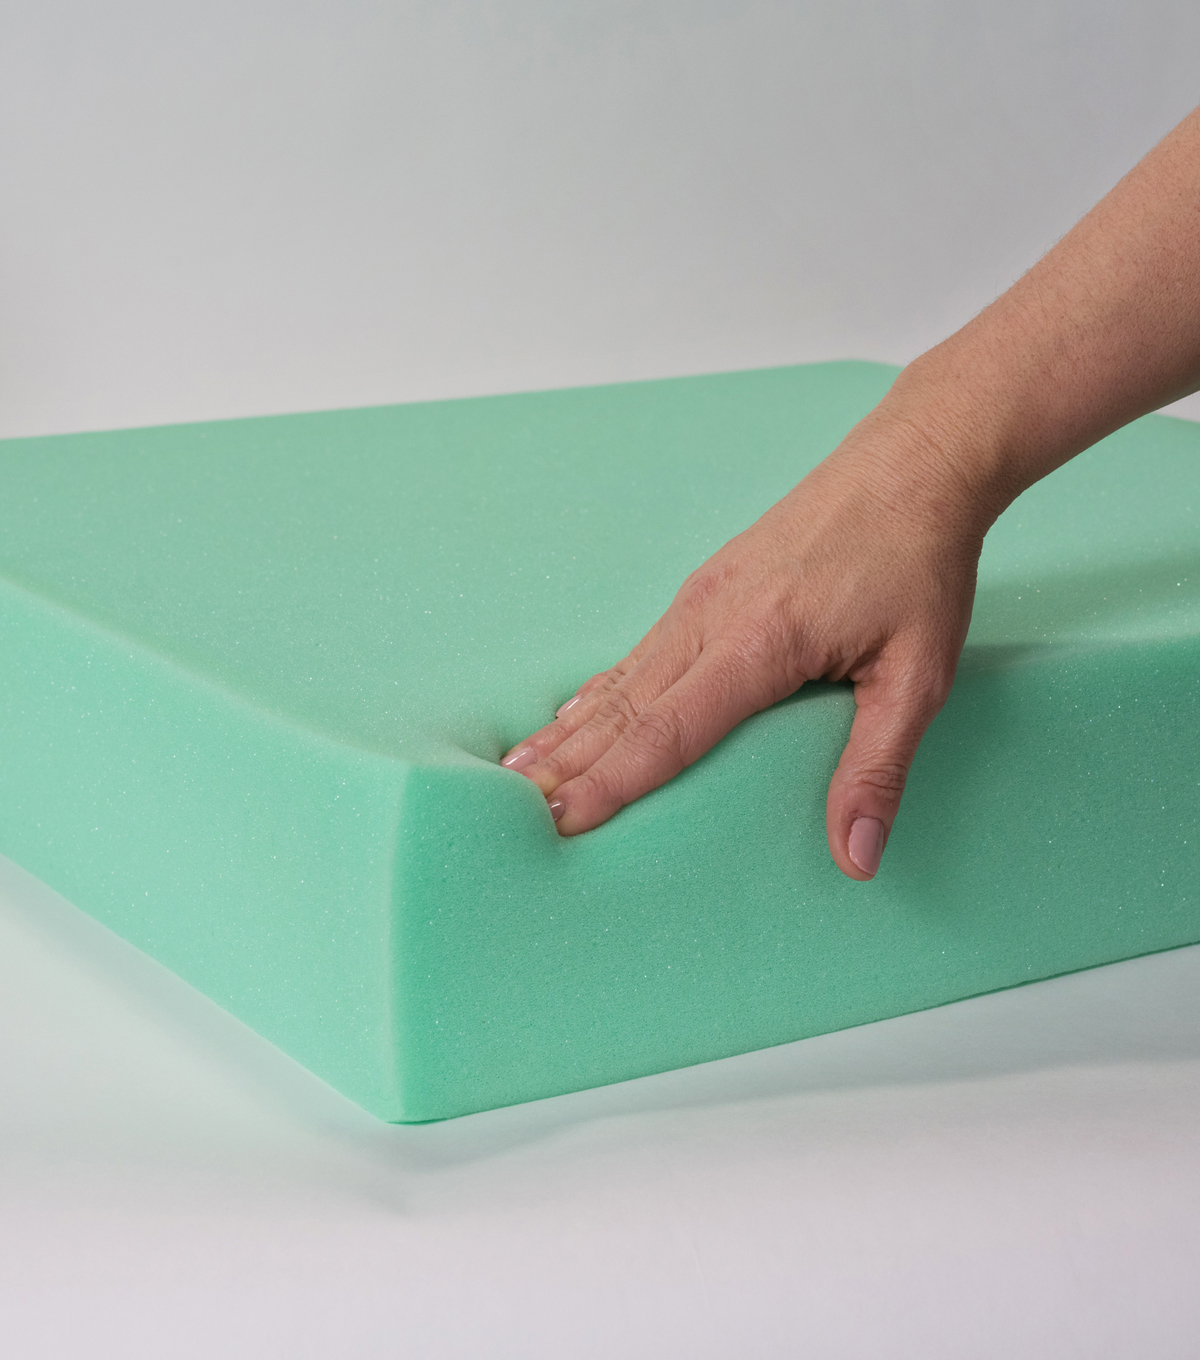 Exceptional Fairfield Extra Support Cushion Foam ...